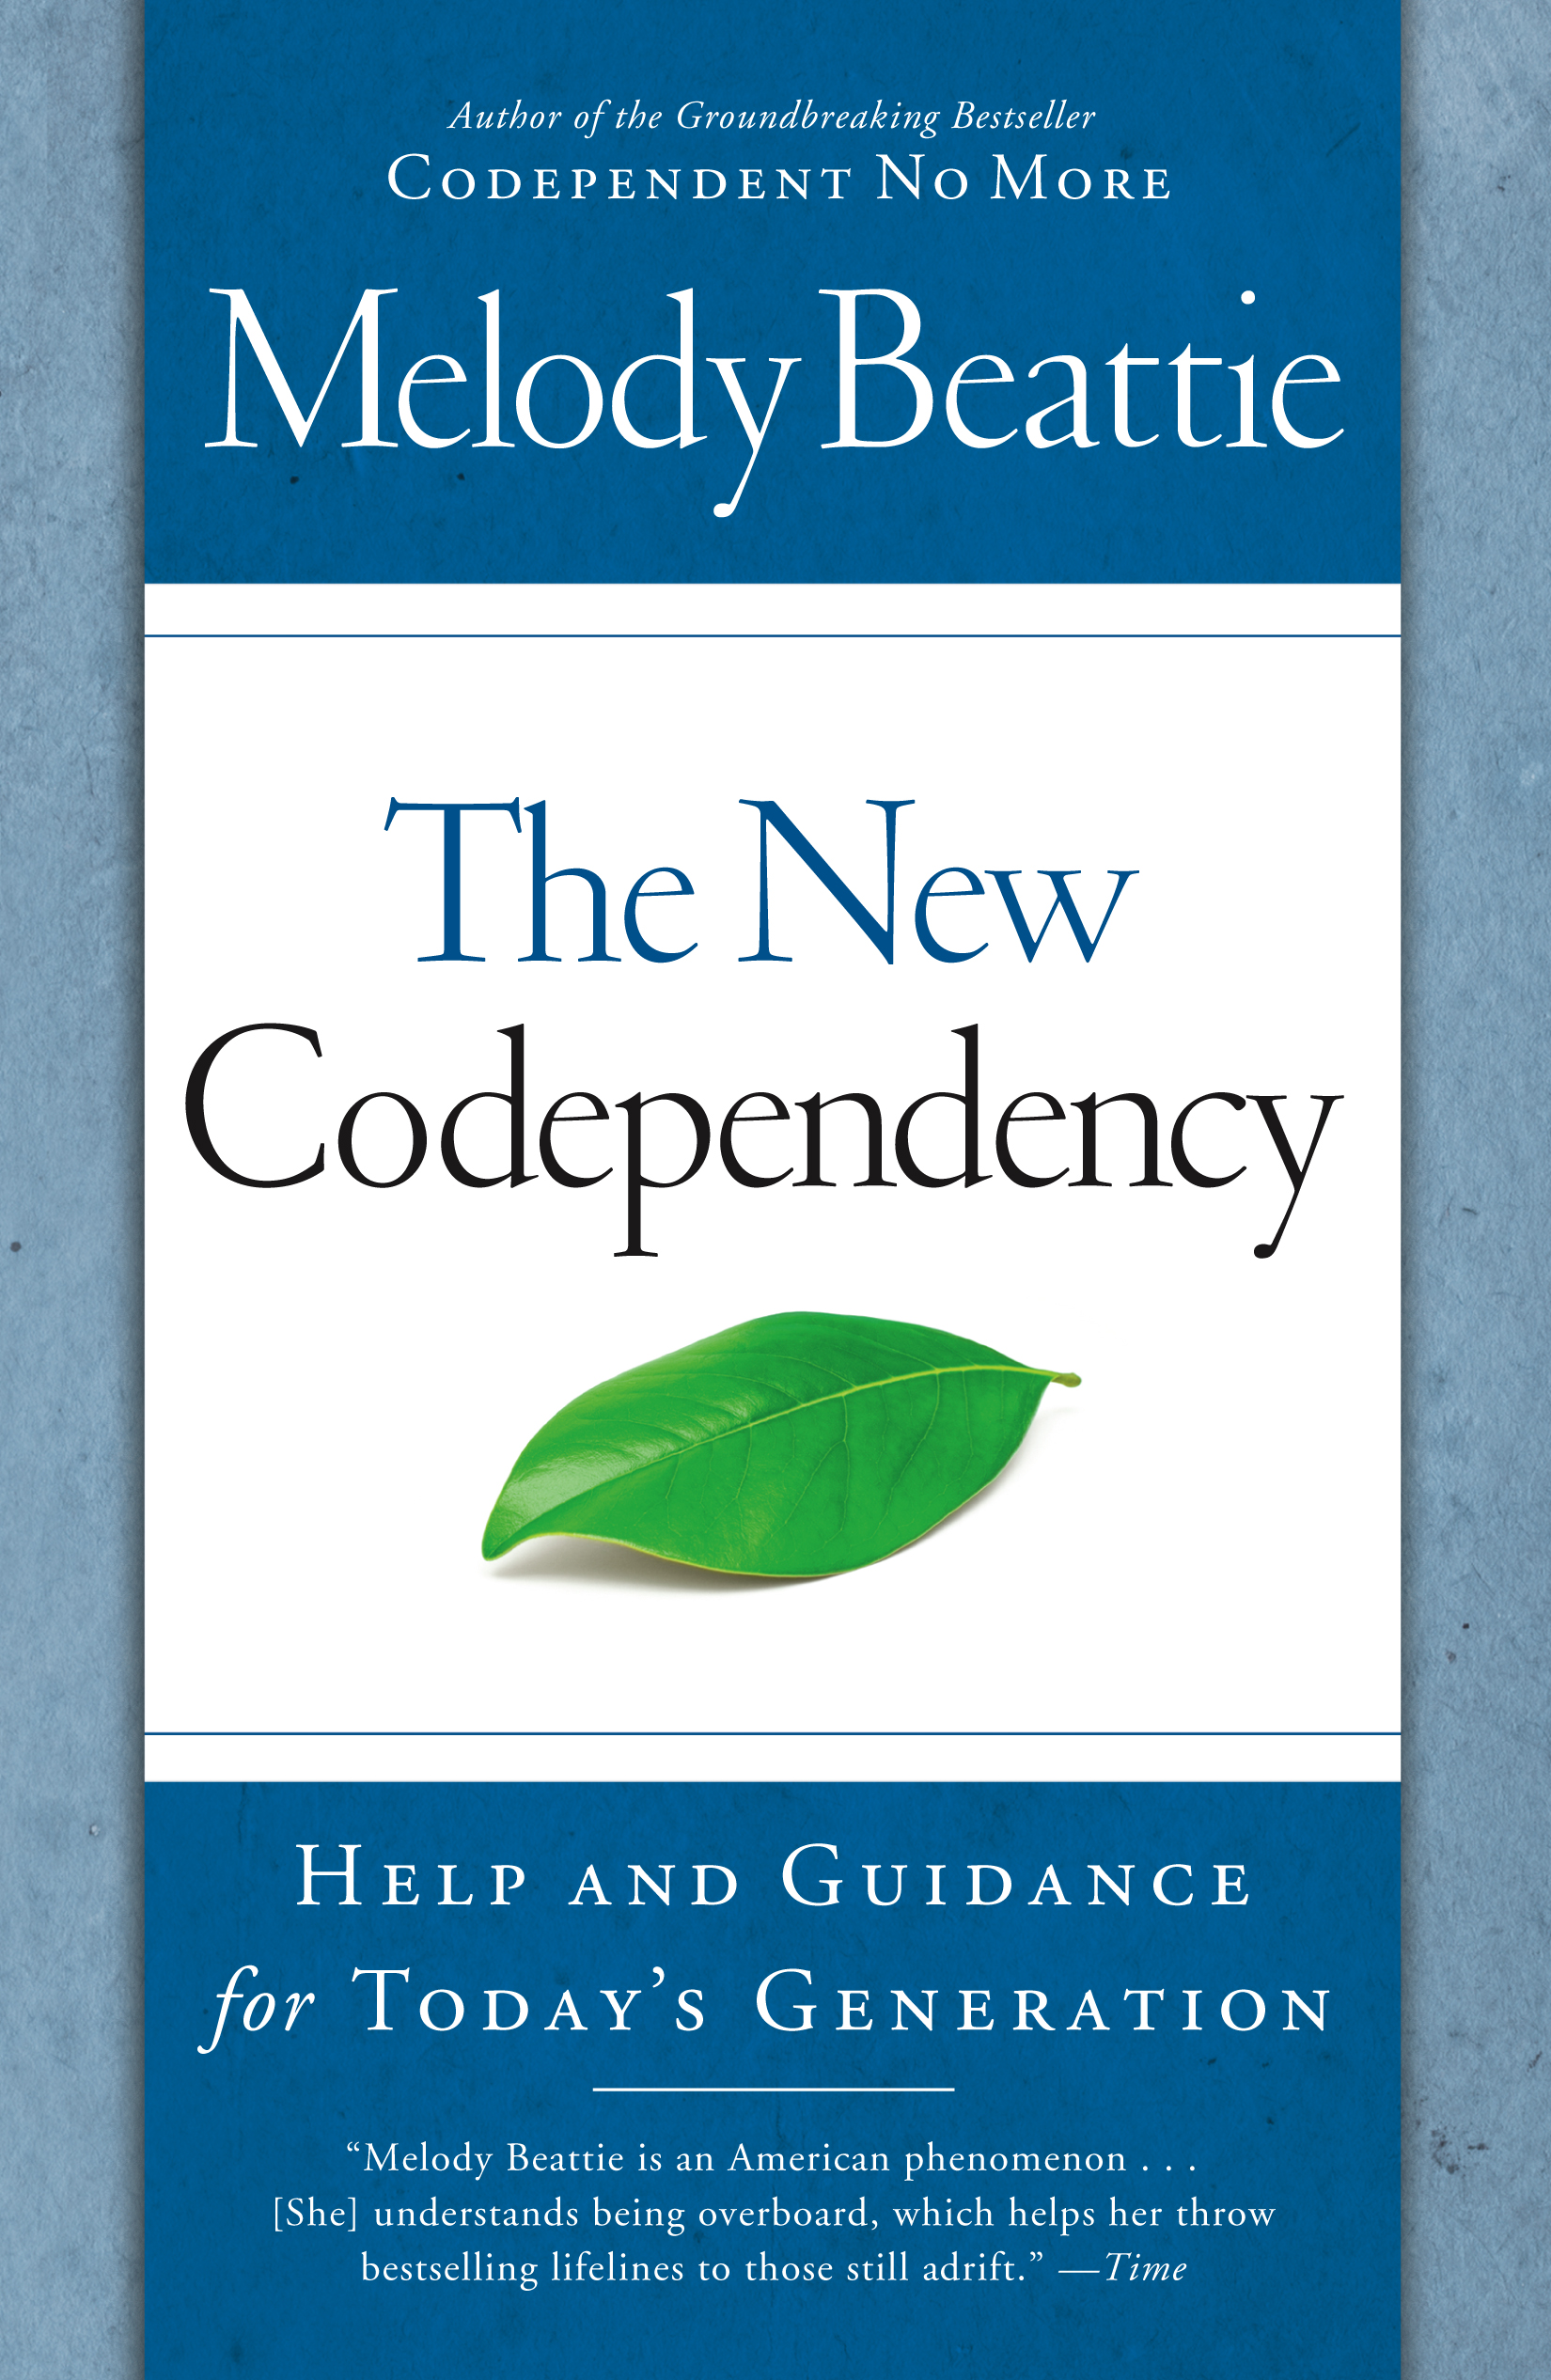 Book Cover Image (jpg): The New Codependency